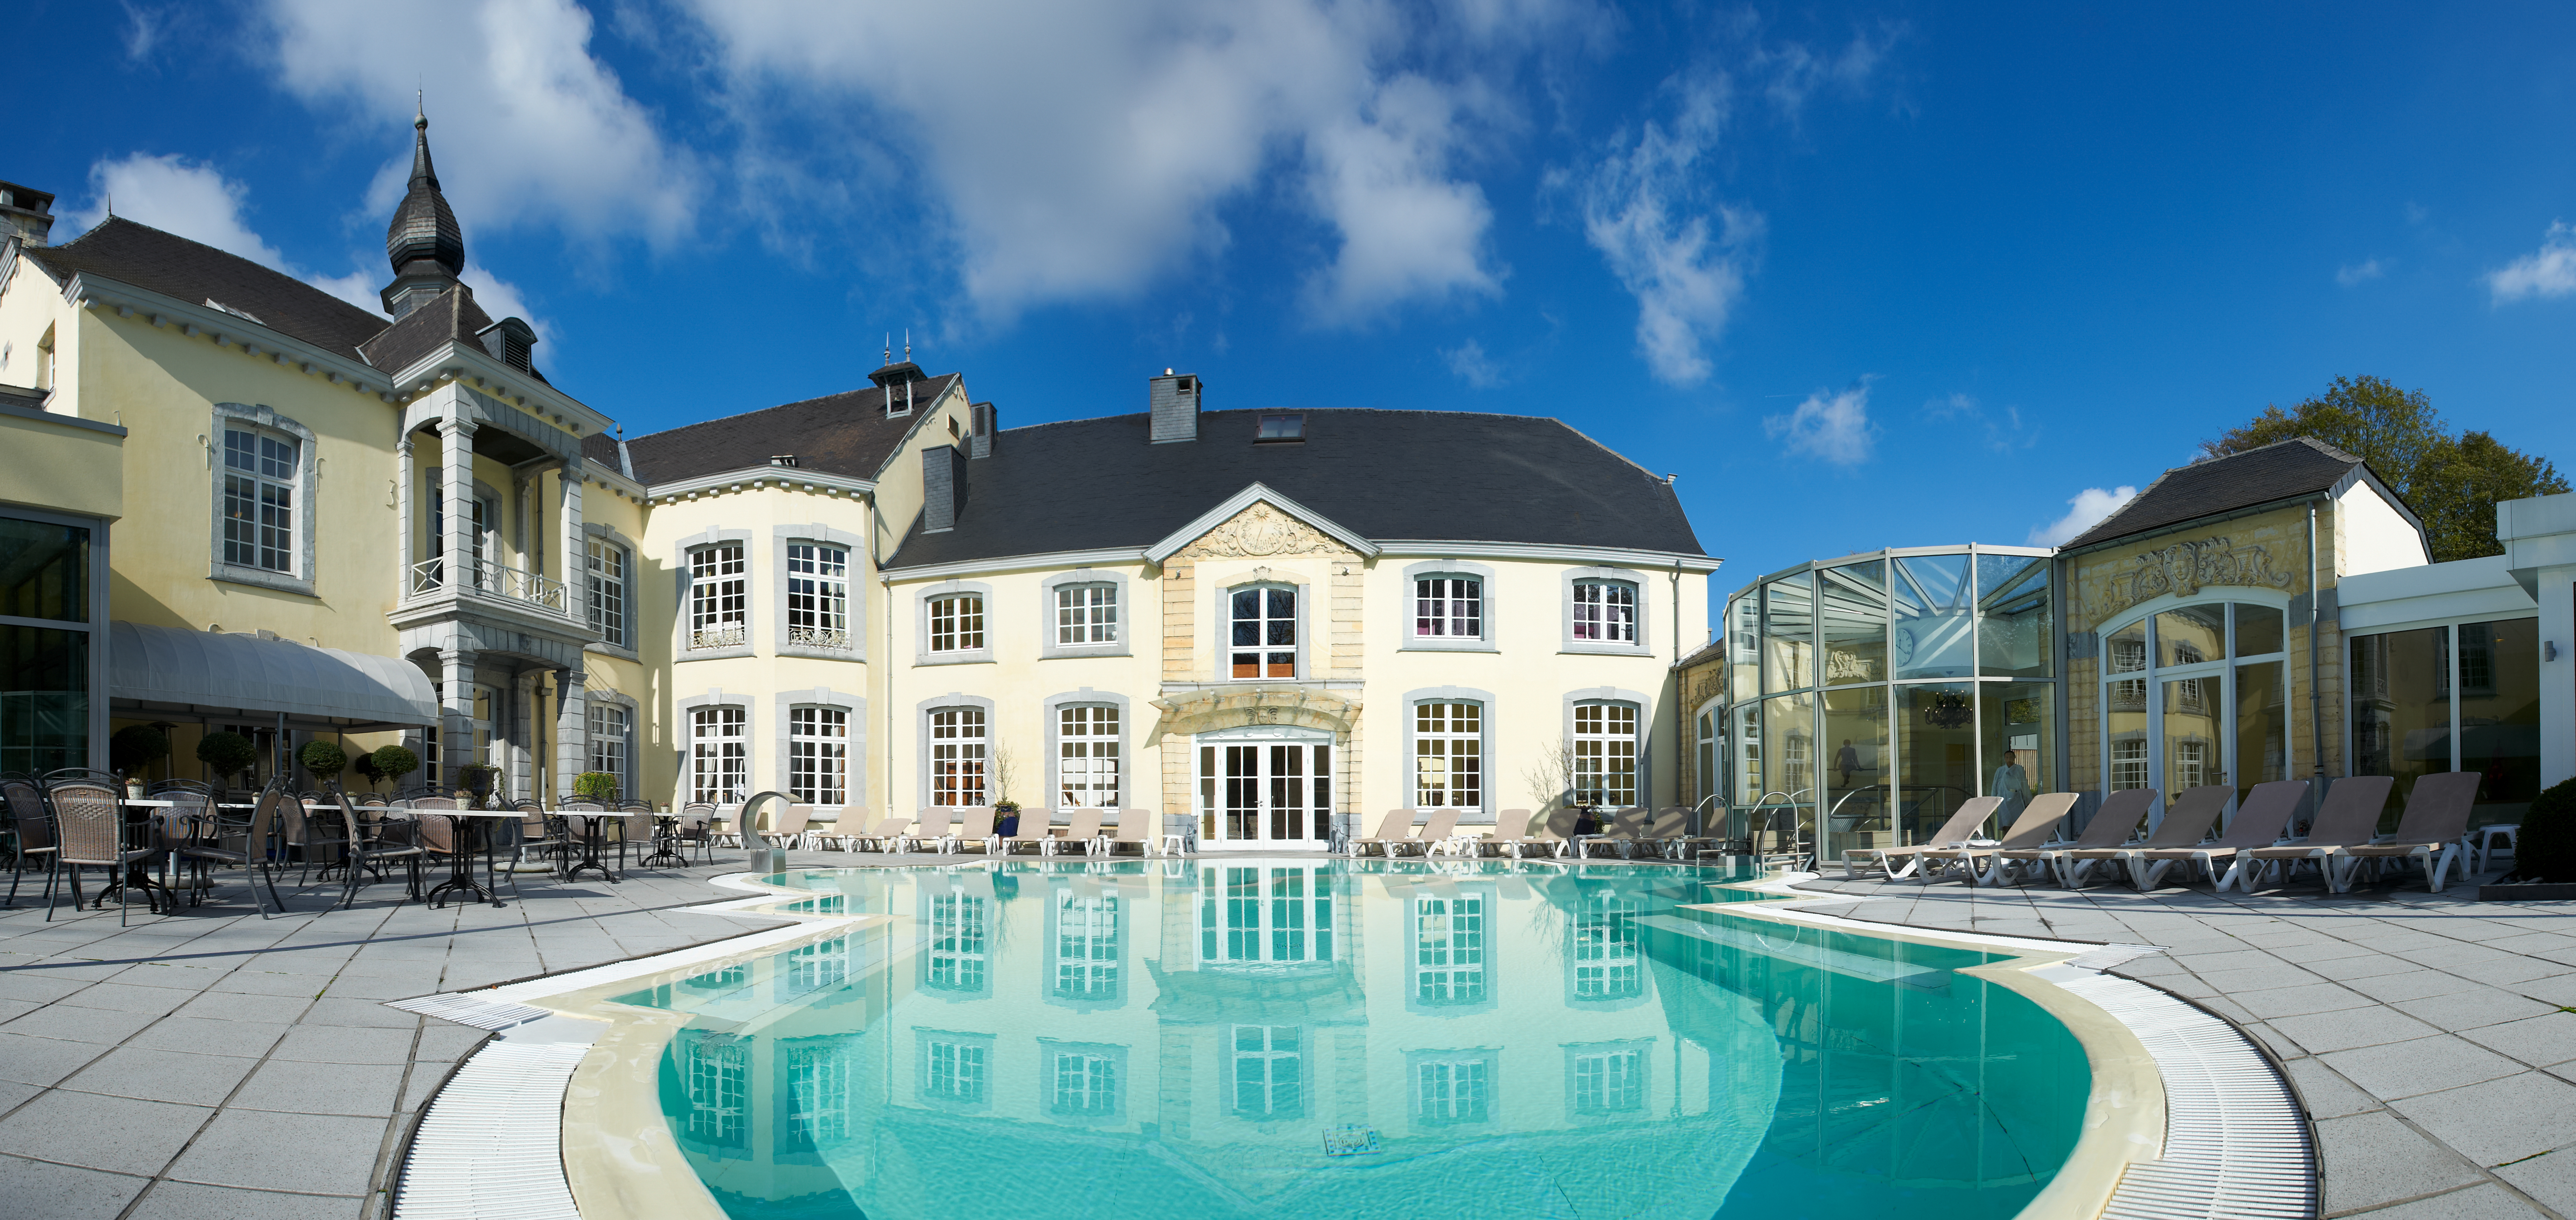 Enjoy the Château des Thermes thermal water in Chaudfontaine